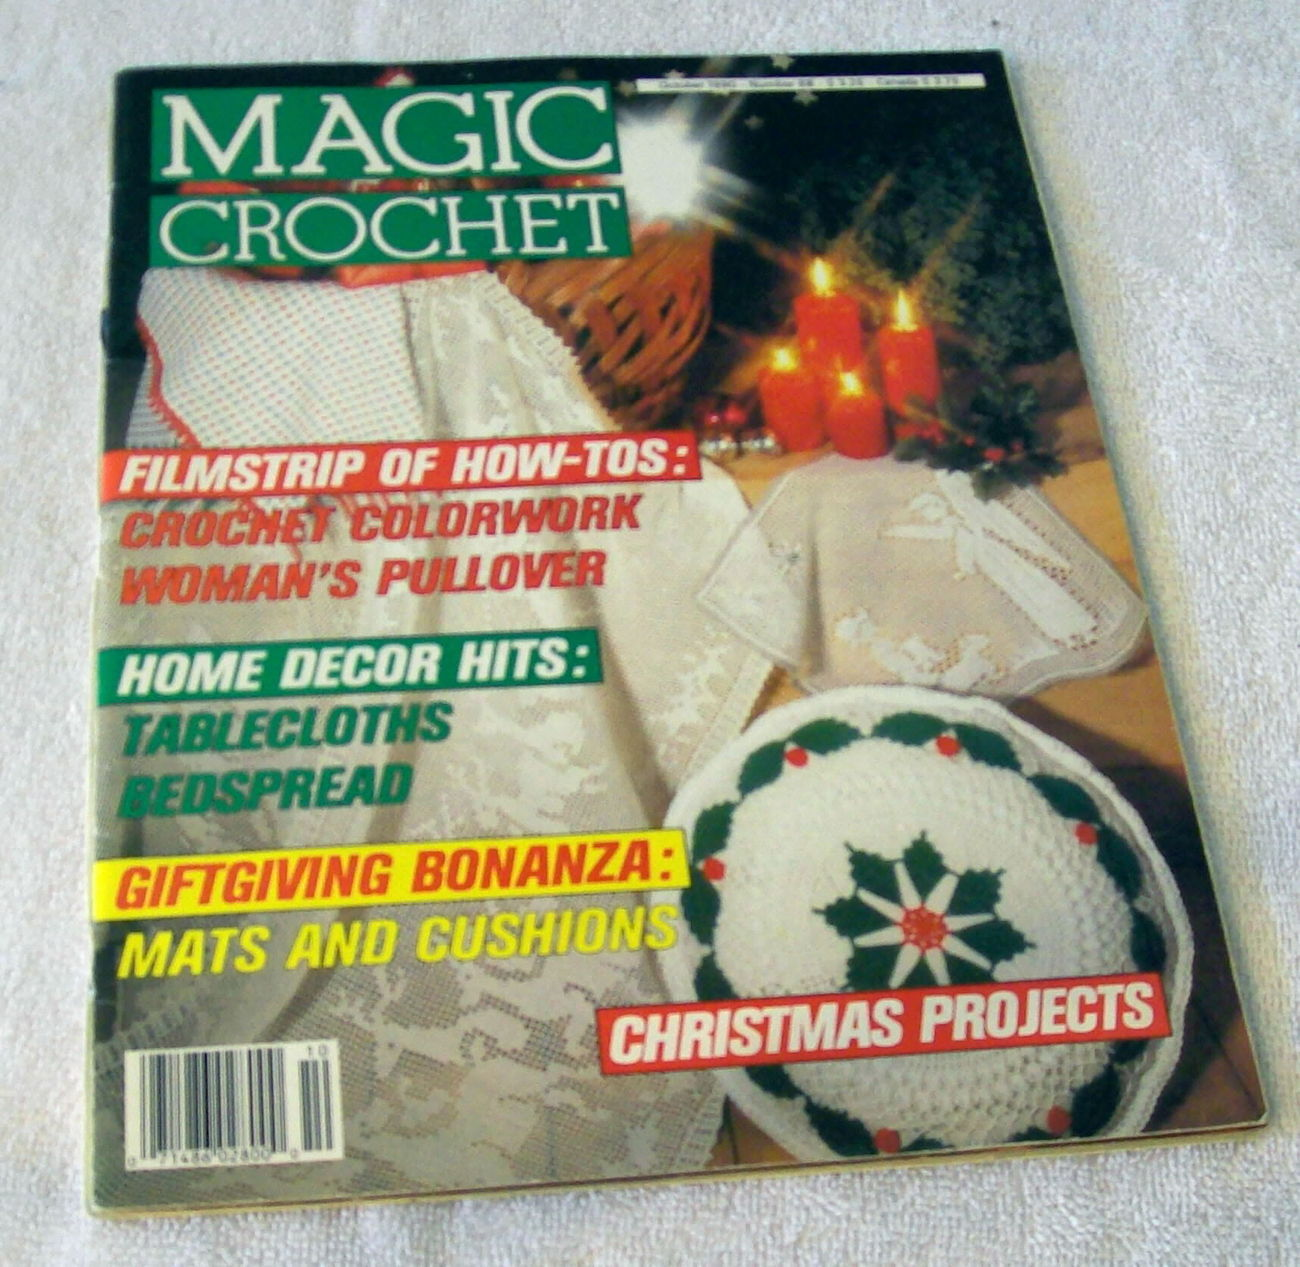 Magic Crochet Magazine : Magic Crochet Magazine October 1990 Number 68 - Mixed Crochet